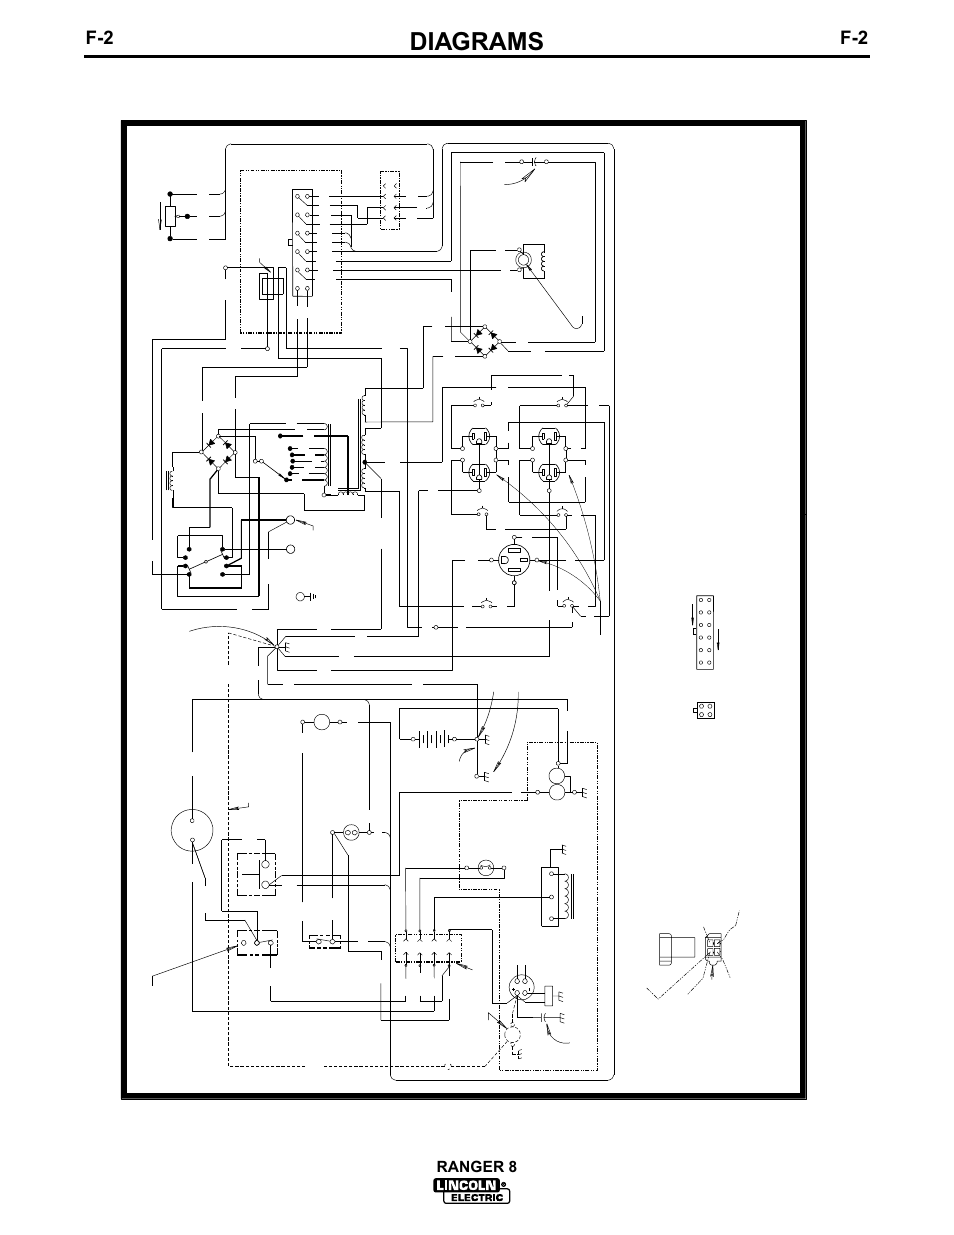 Diagrams, Ranger 8, Electrical symbols per e1537 | Lincoln Electric IM510 RANGER  8 User Manual | Page 31 / 42